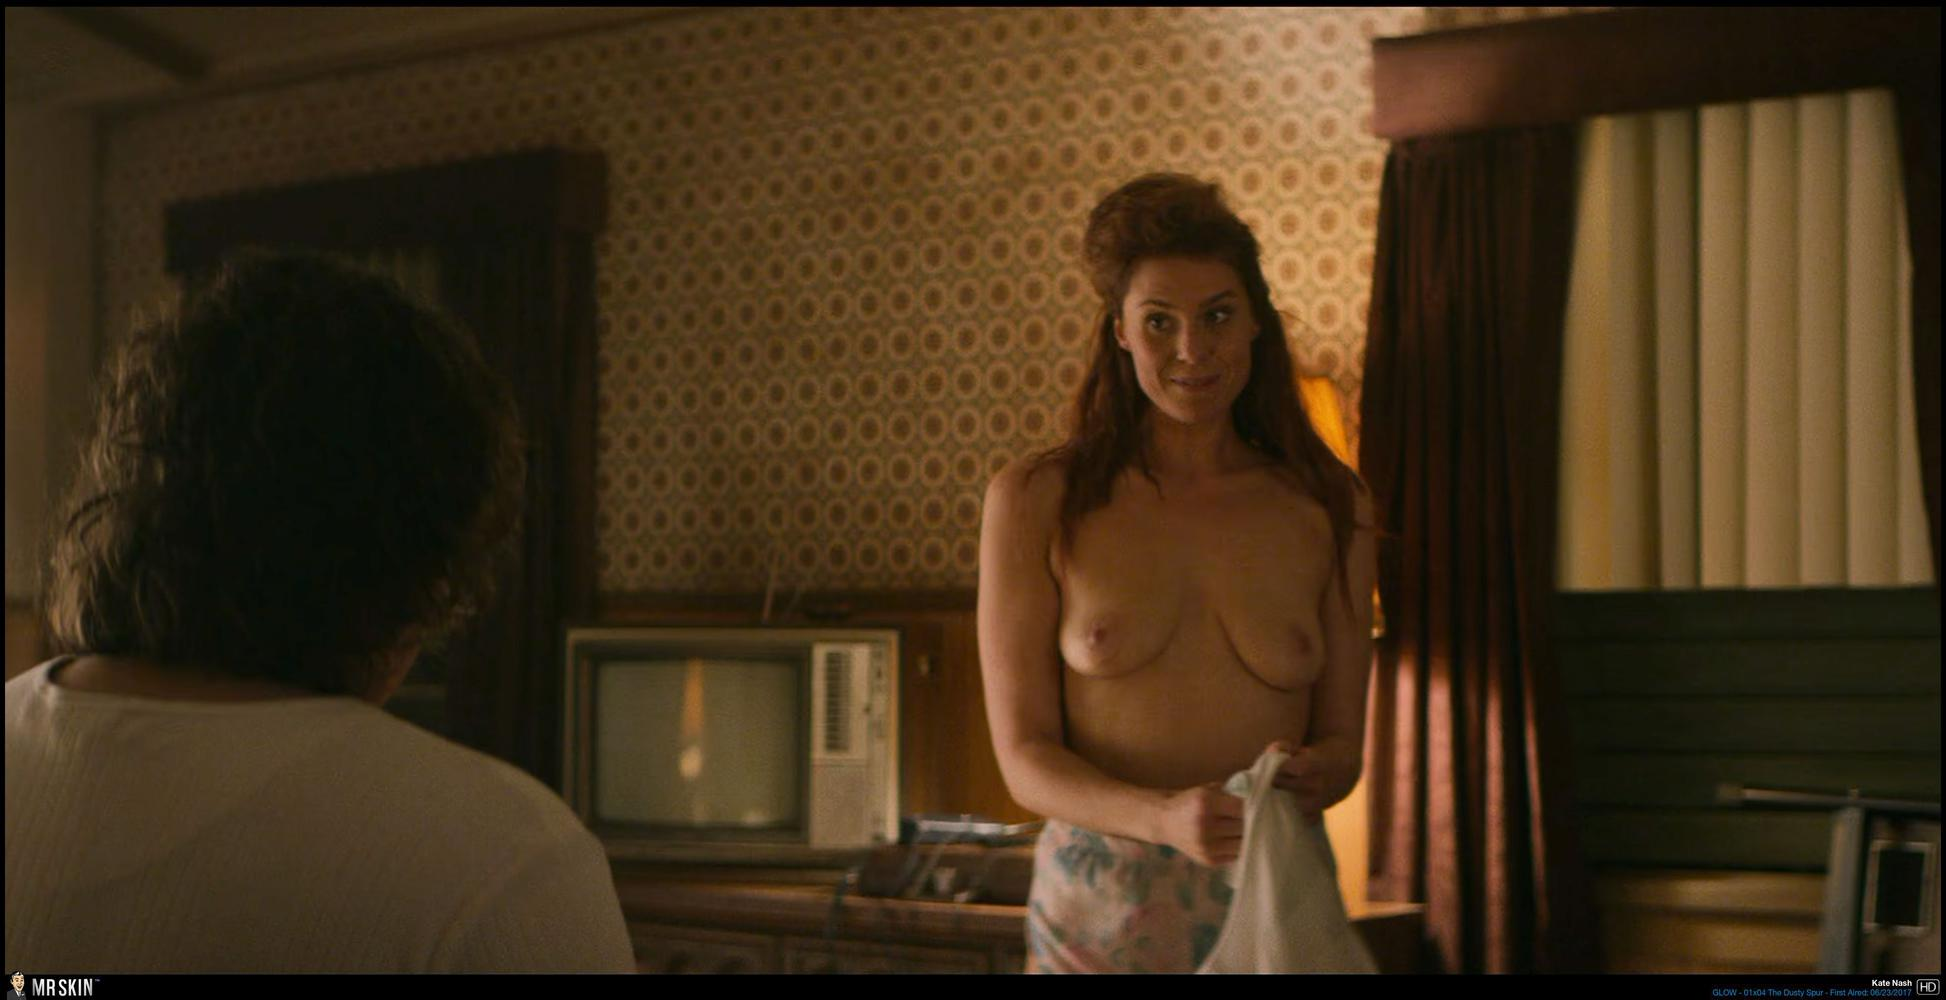 Alison Brie Glow Boobs tv nudity report: glow, i'm dying up here, riviera, kingdom,